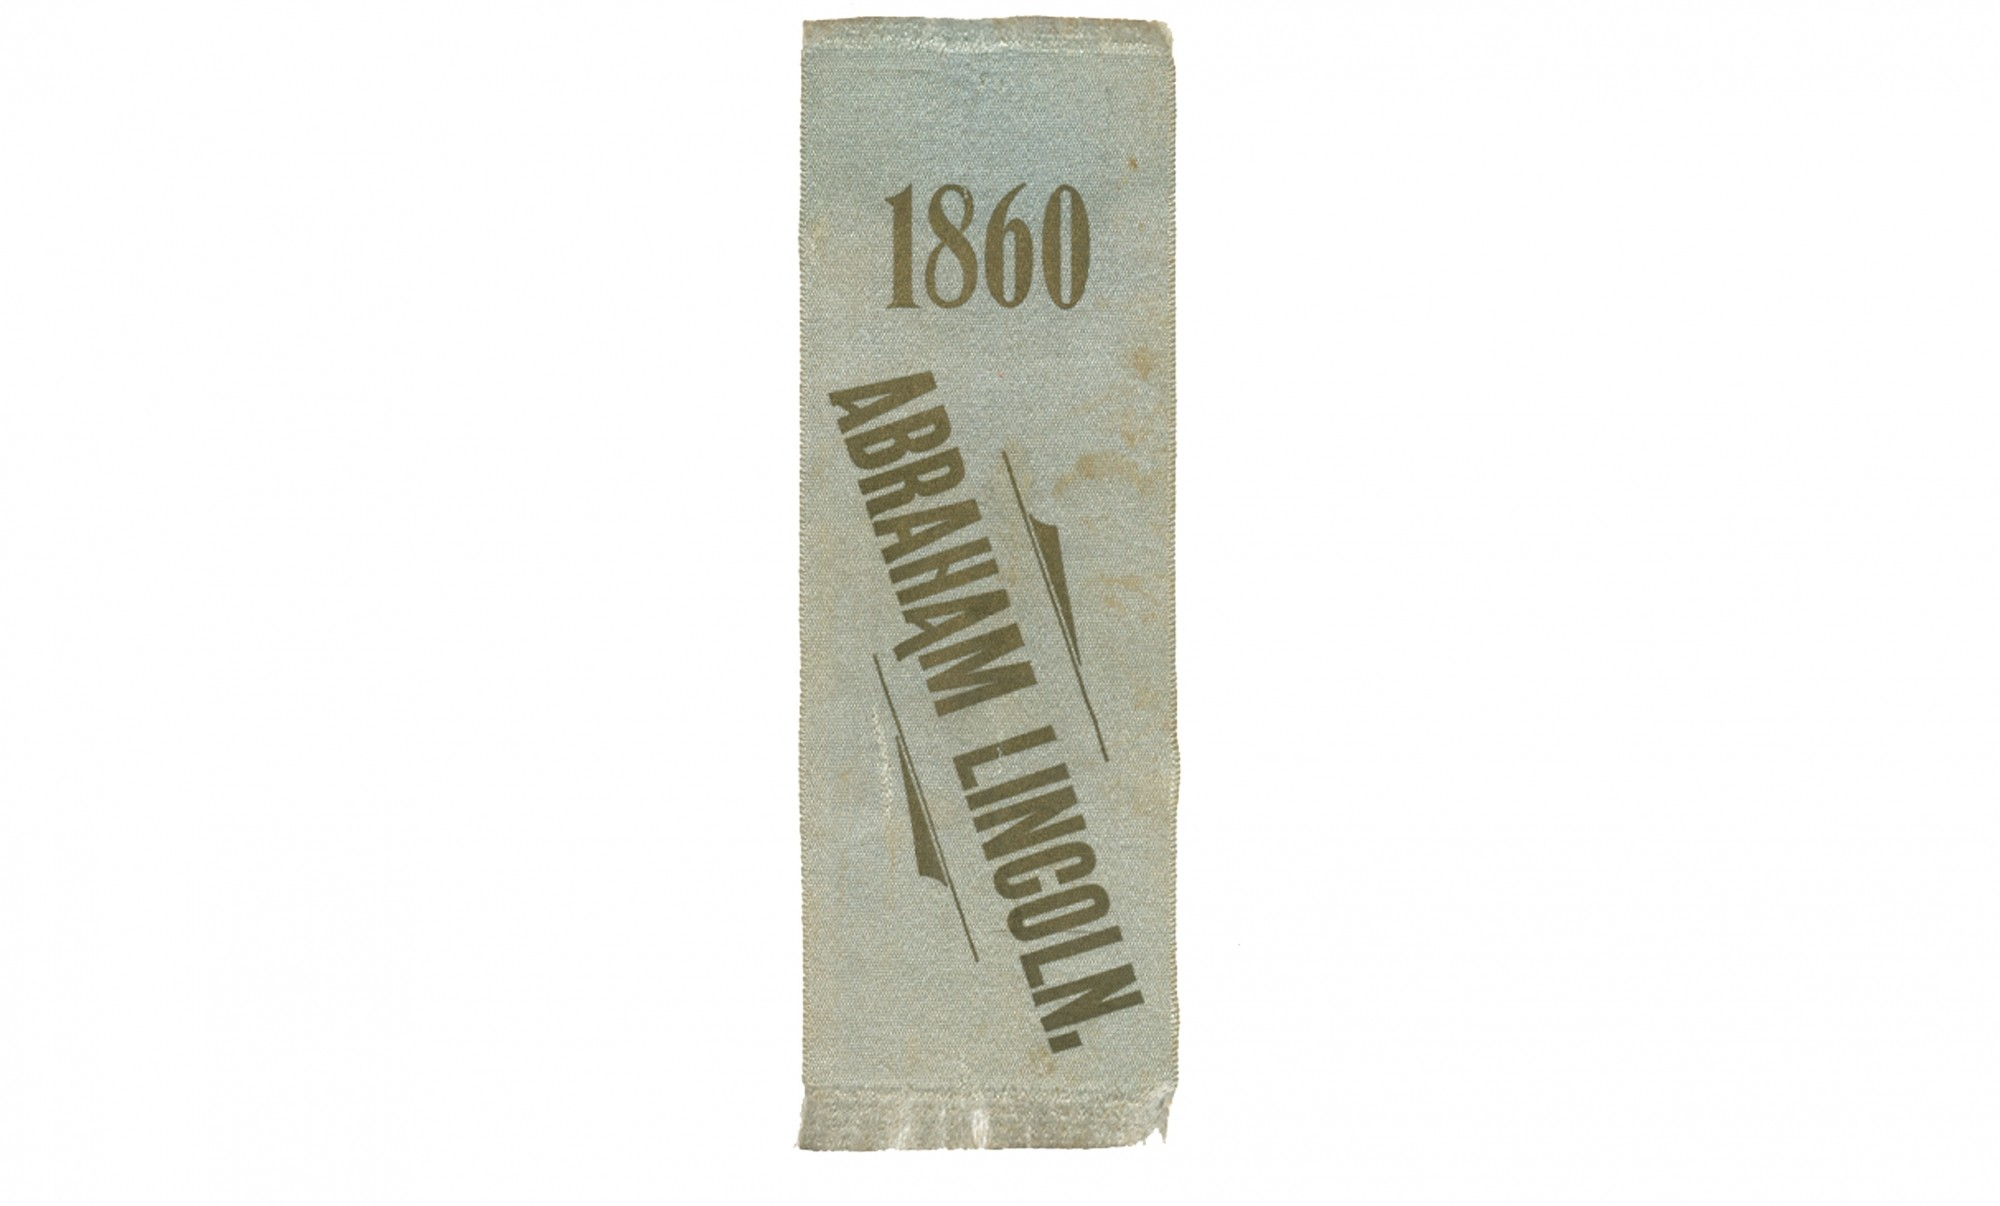 LINCOLN 1860 ELECTION RIBBON